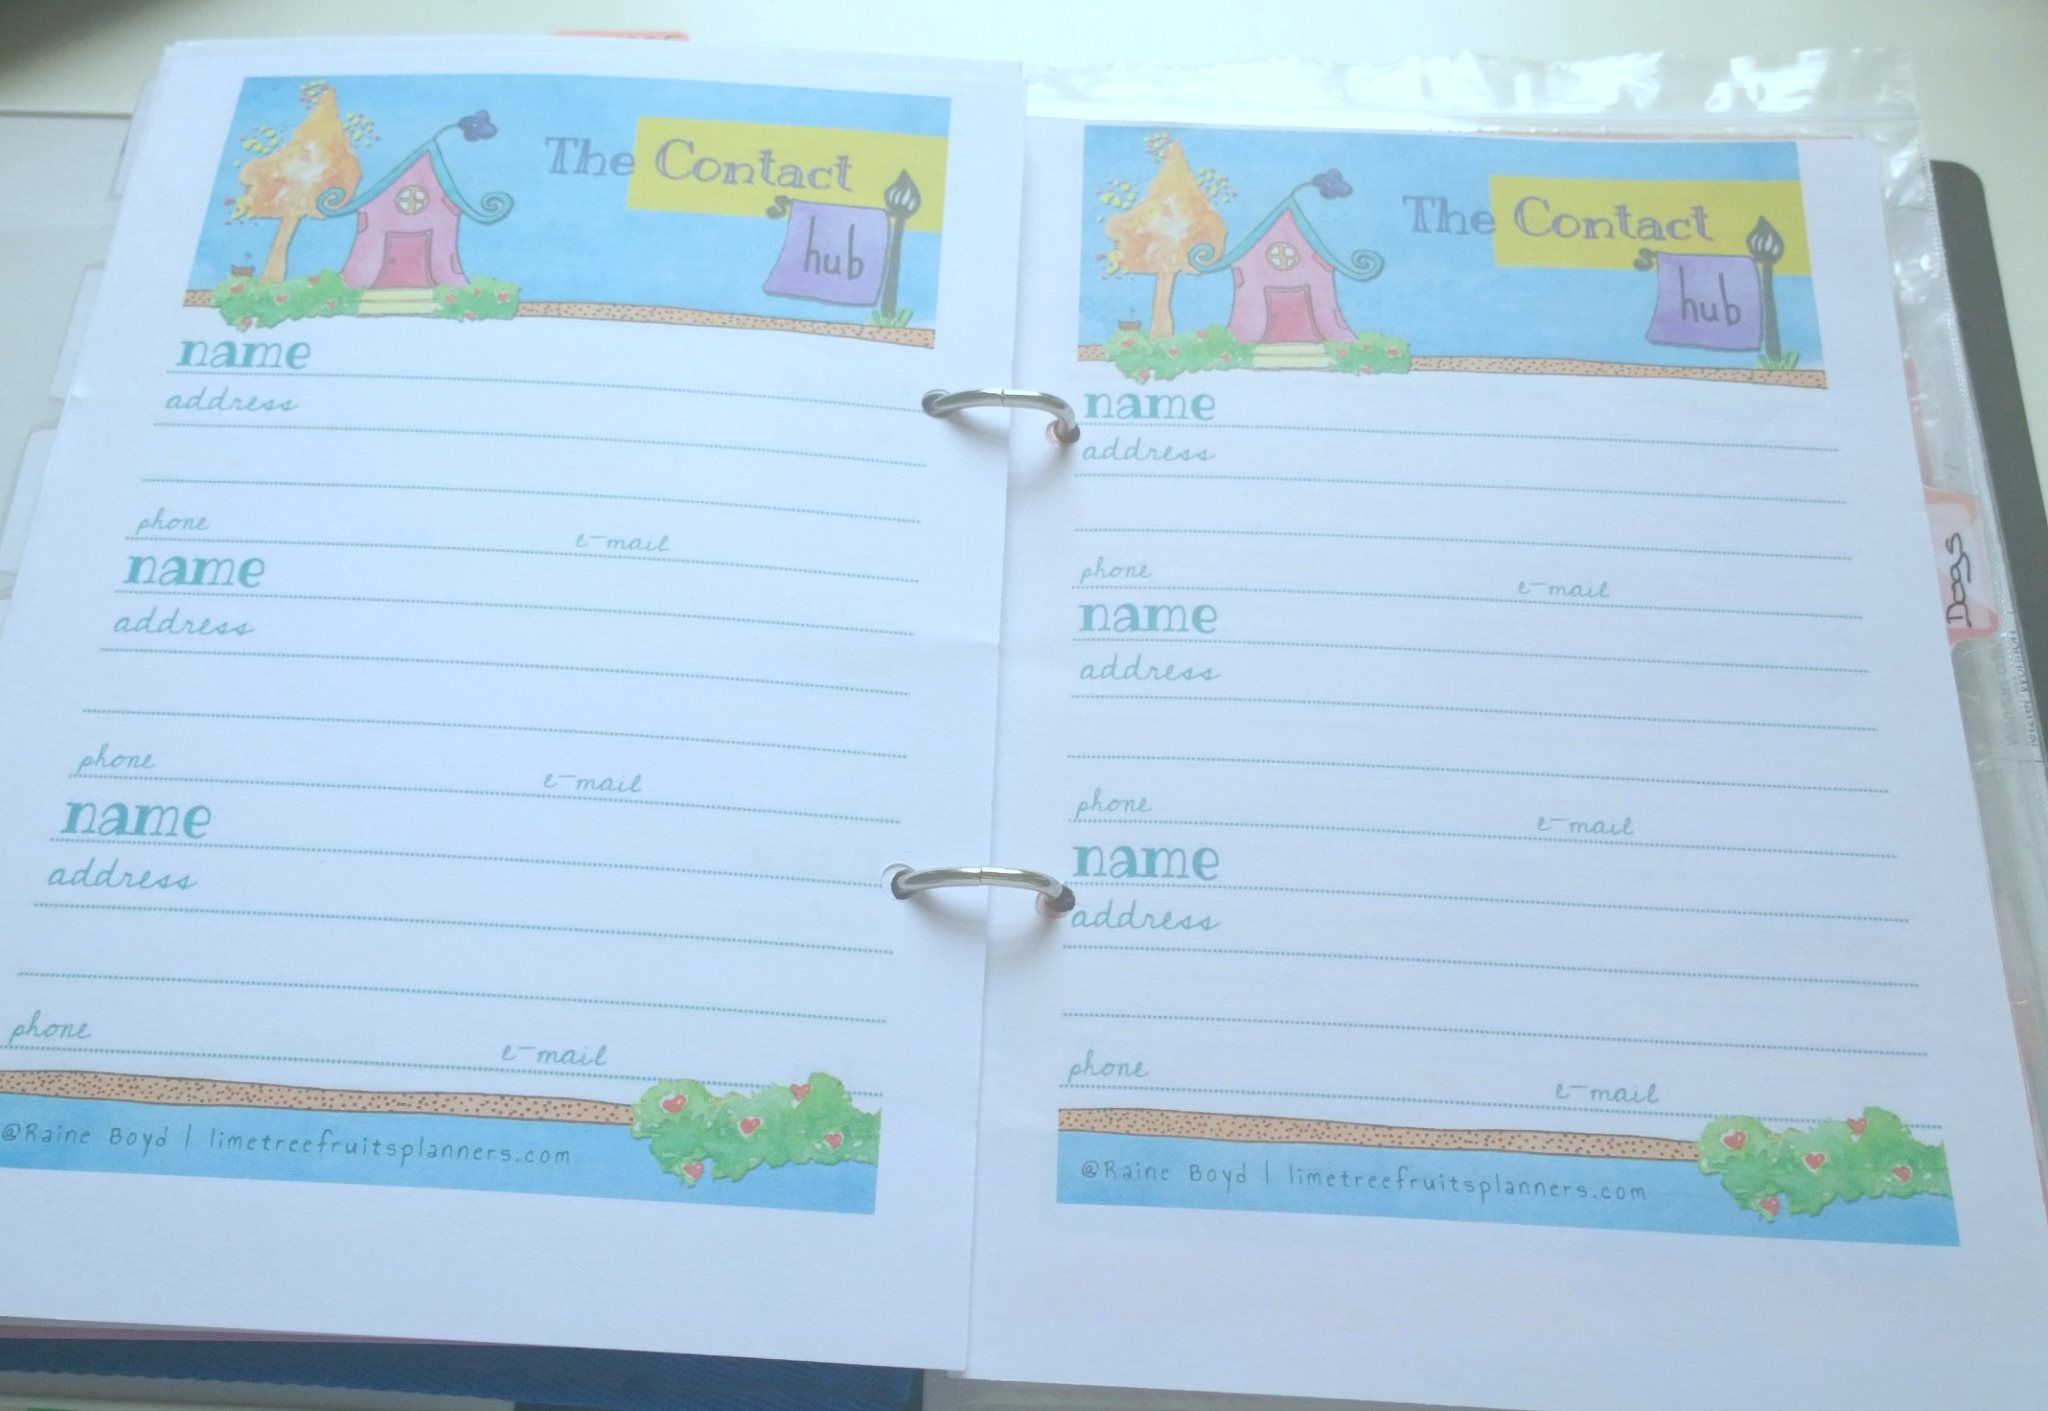 Family planner contact